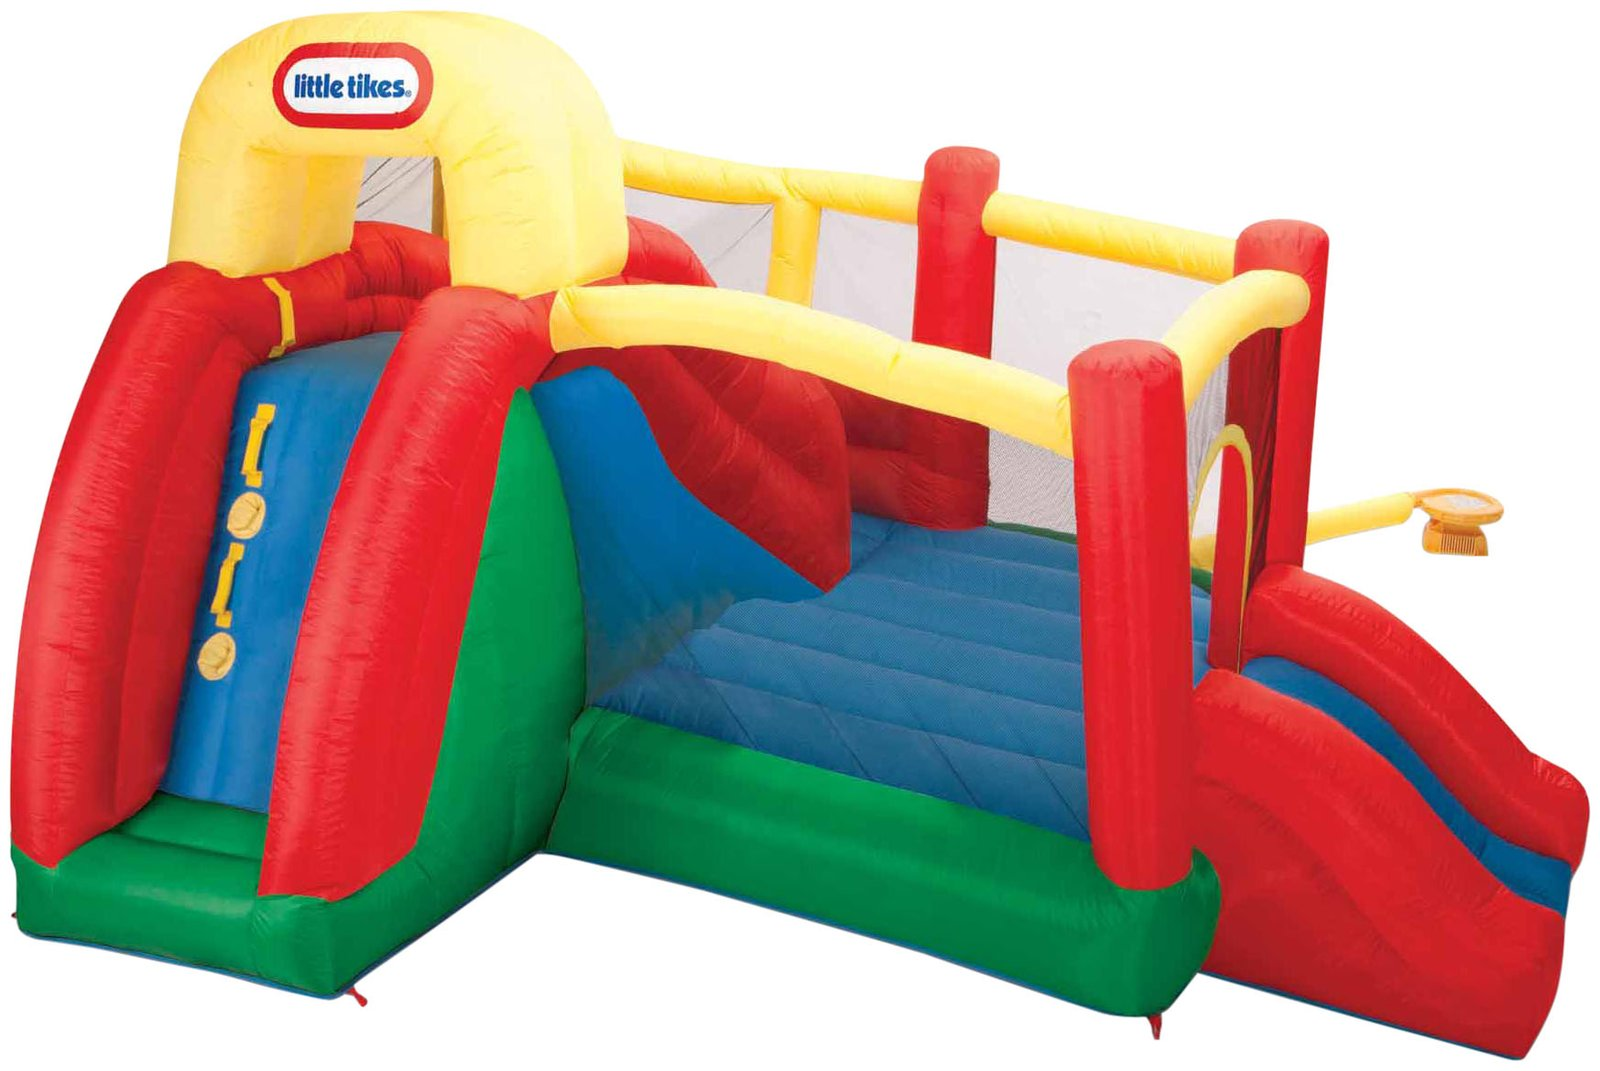 awesome little tikes bounce house made of caoutchouc with double slide for play yard ideas